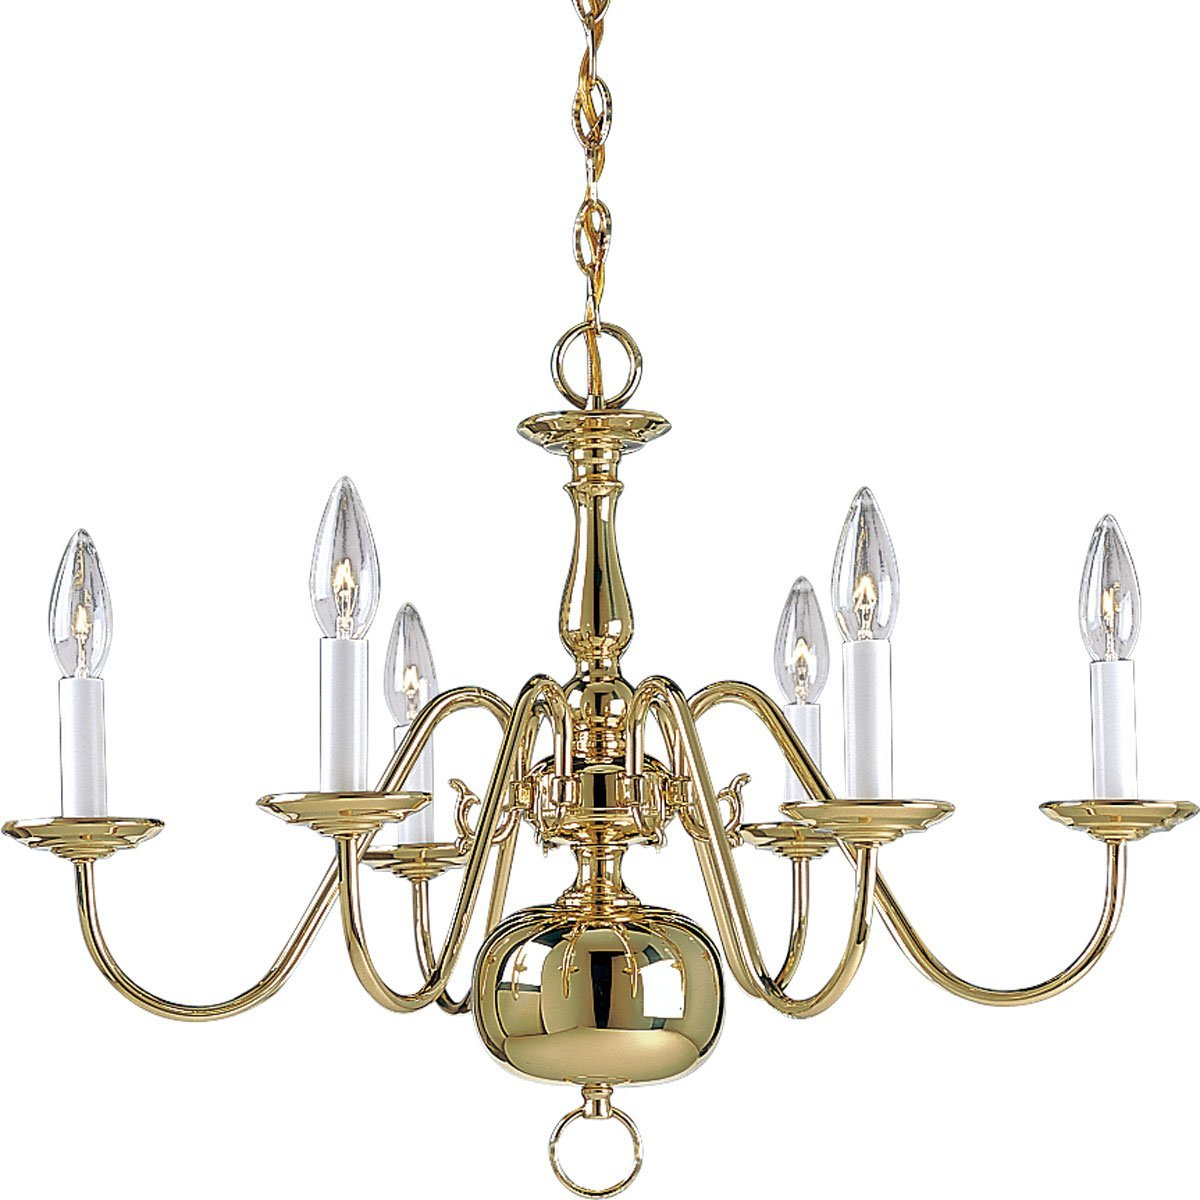 wonderful Livex Lighting 3 tier chandelier for home lighting ideas